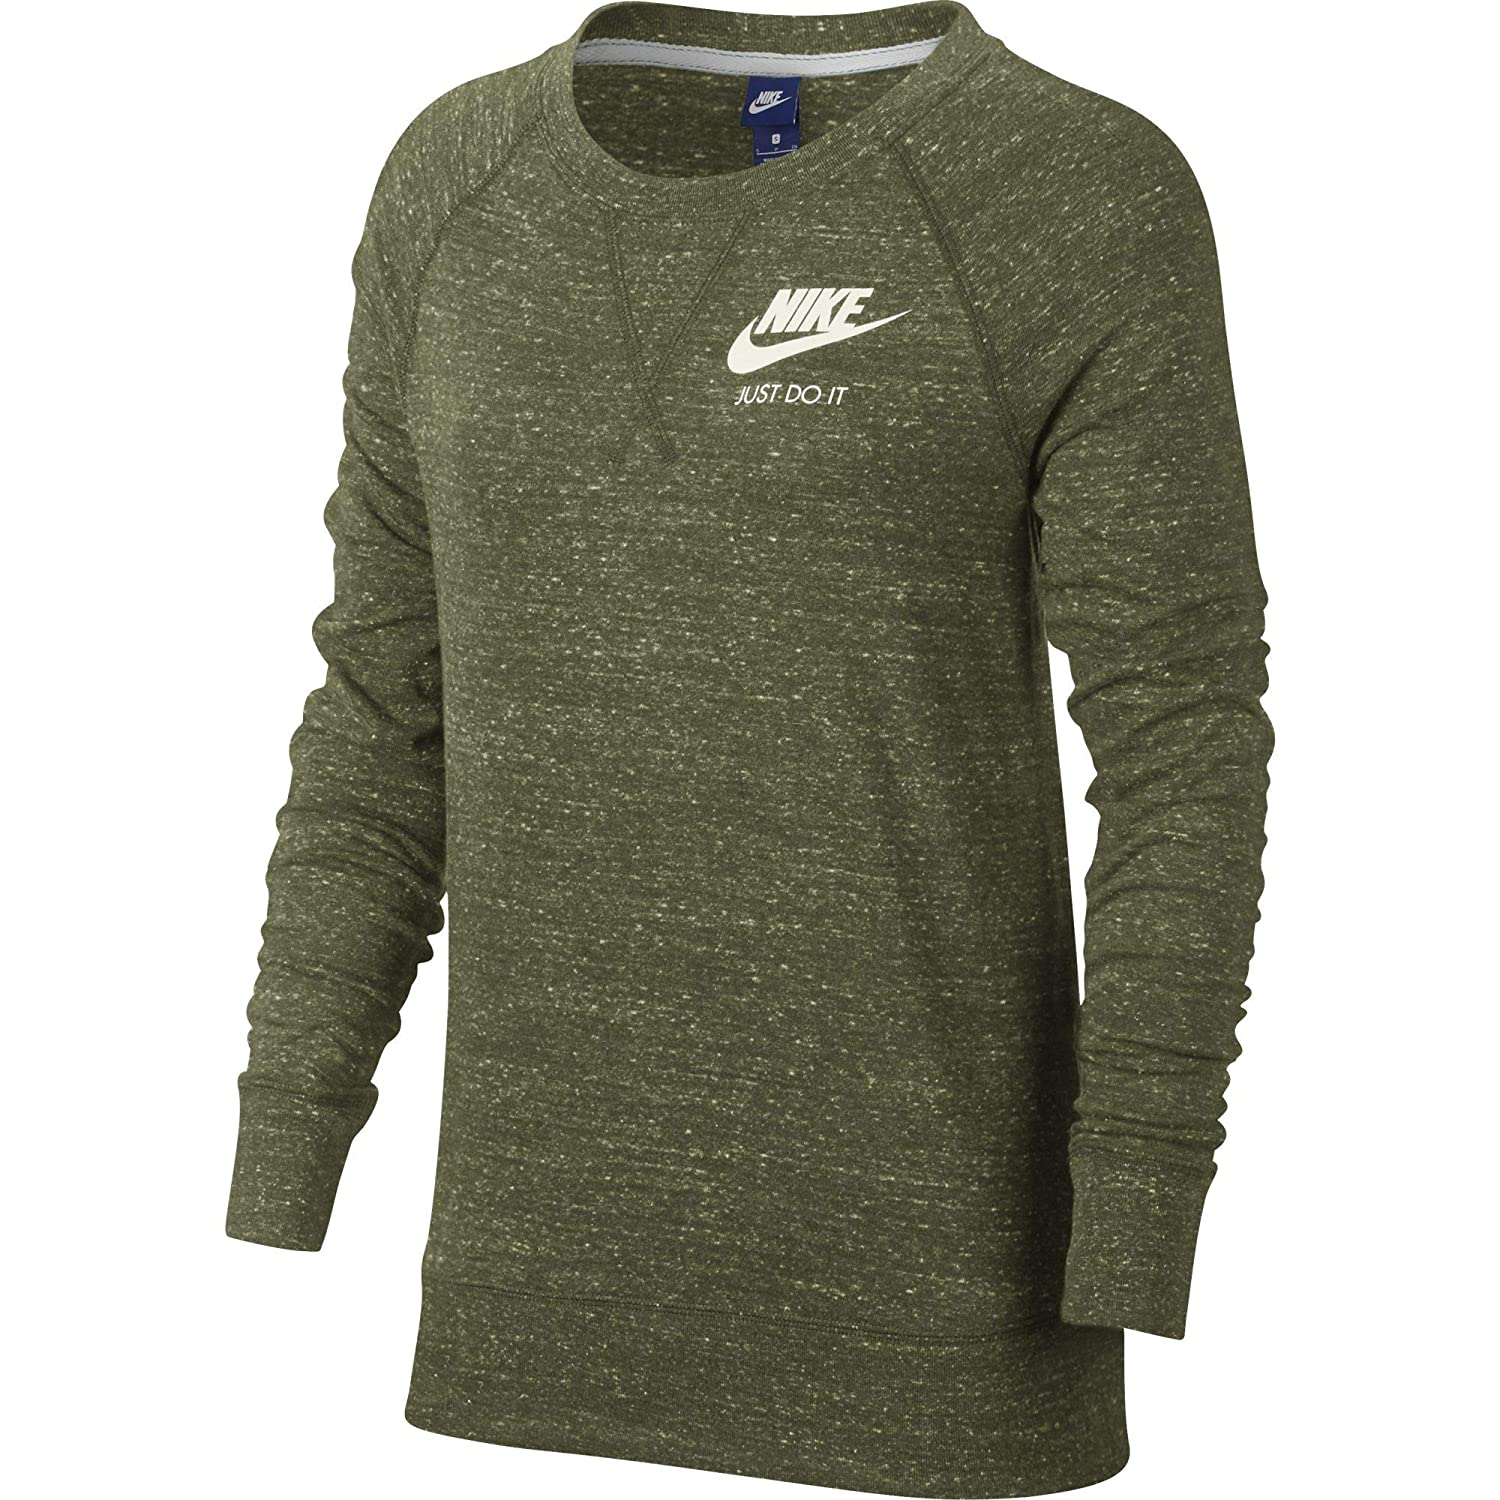 Amazon.com  Nike Womens Gym Vintage Crew Sweatshirt  Sports   Outdoors deb92b082ea2